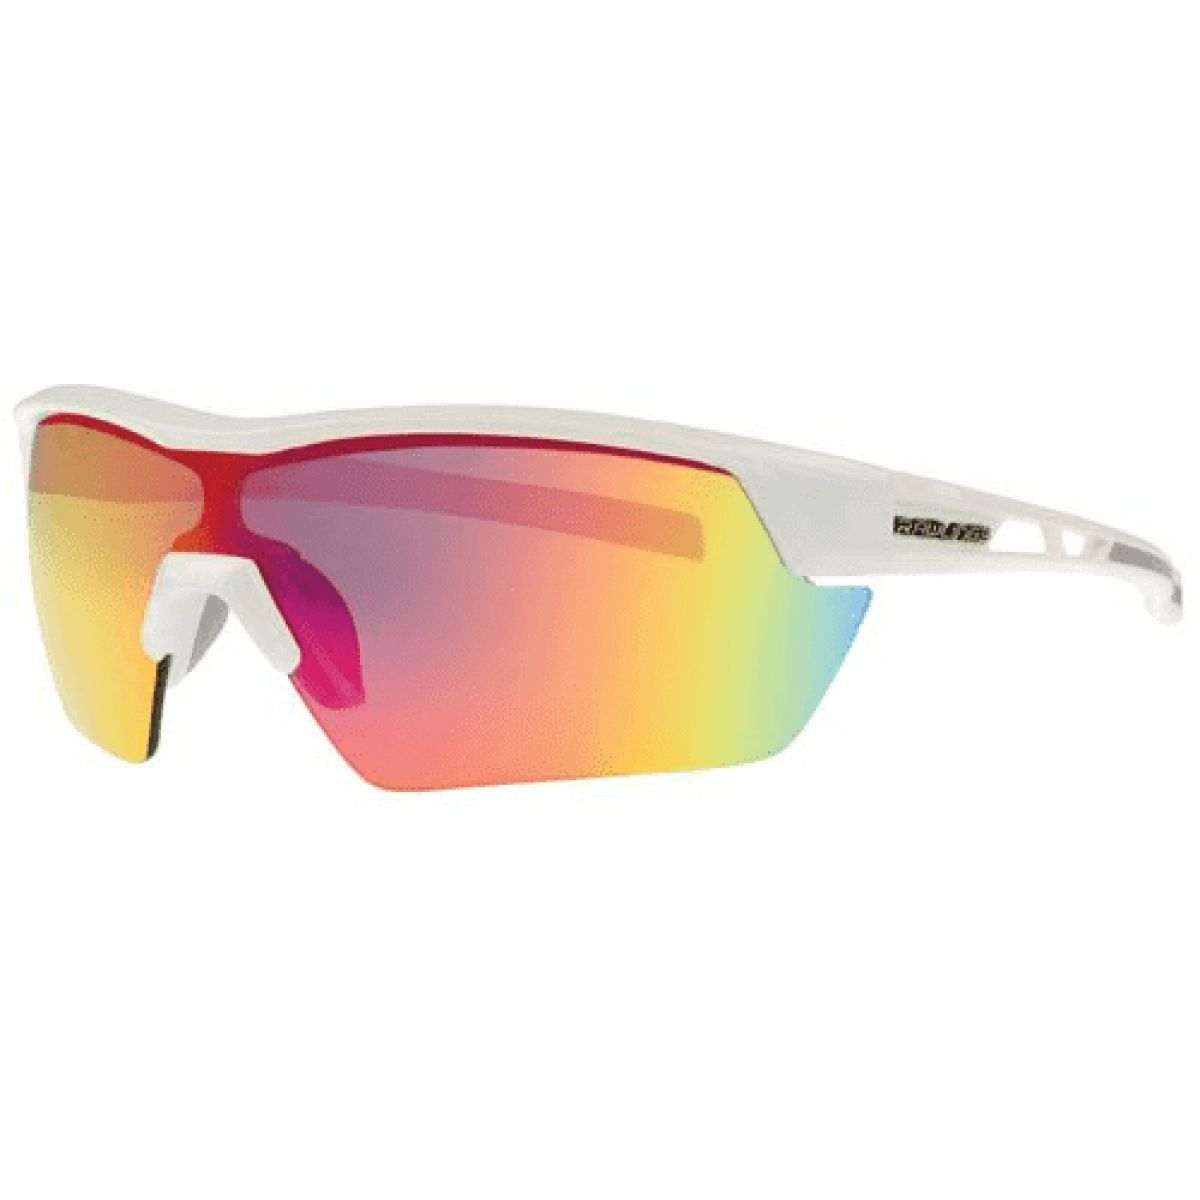 Rawlings RY134 Sunglasses (Youth Fit)